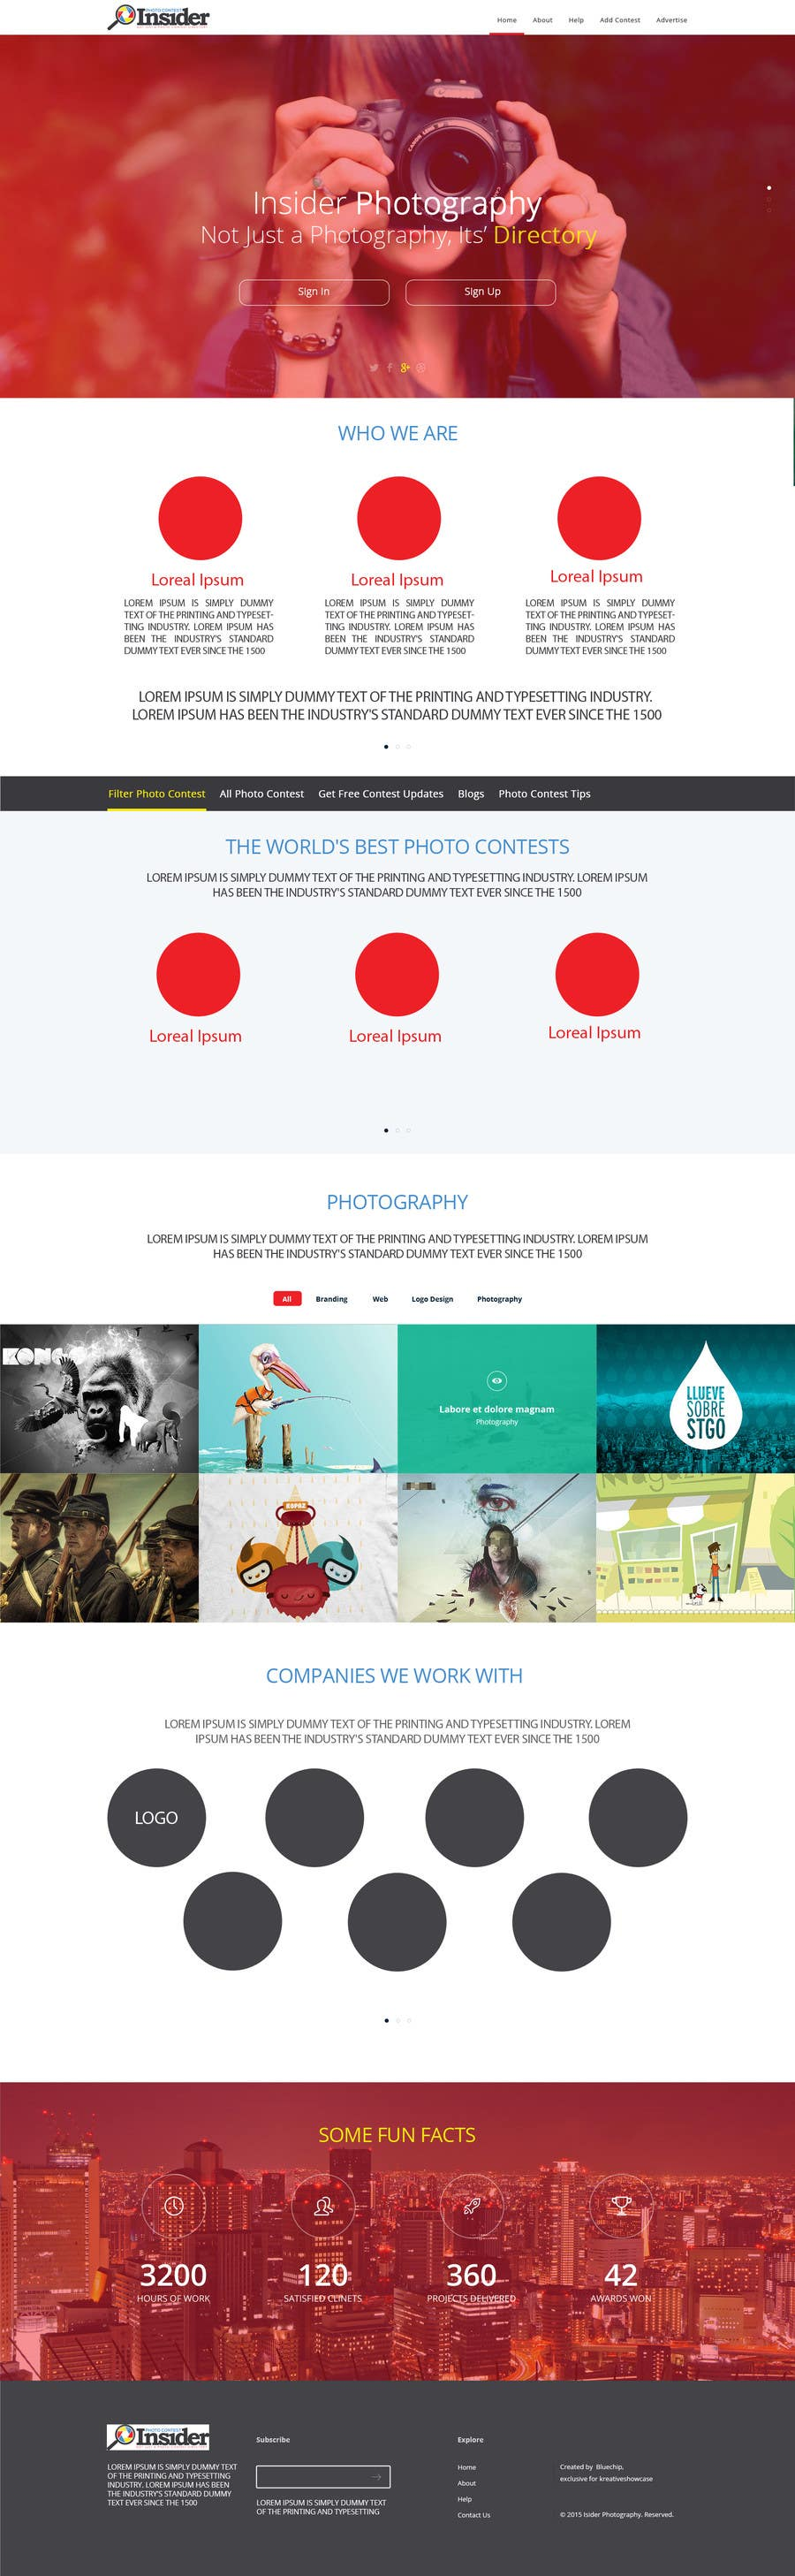 Penyertaan Peraduan #10 untuk Design a Homepage mockup for our existing website WITHOUT changing the layout [PSD ONLY]